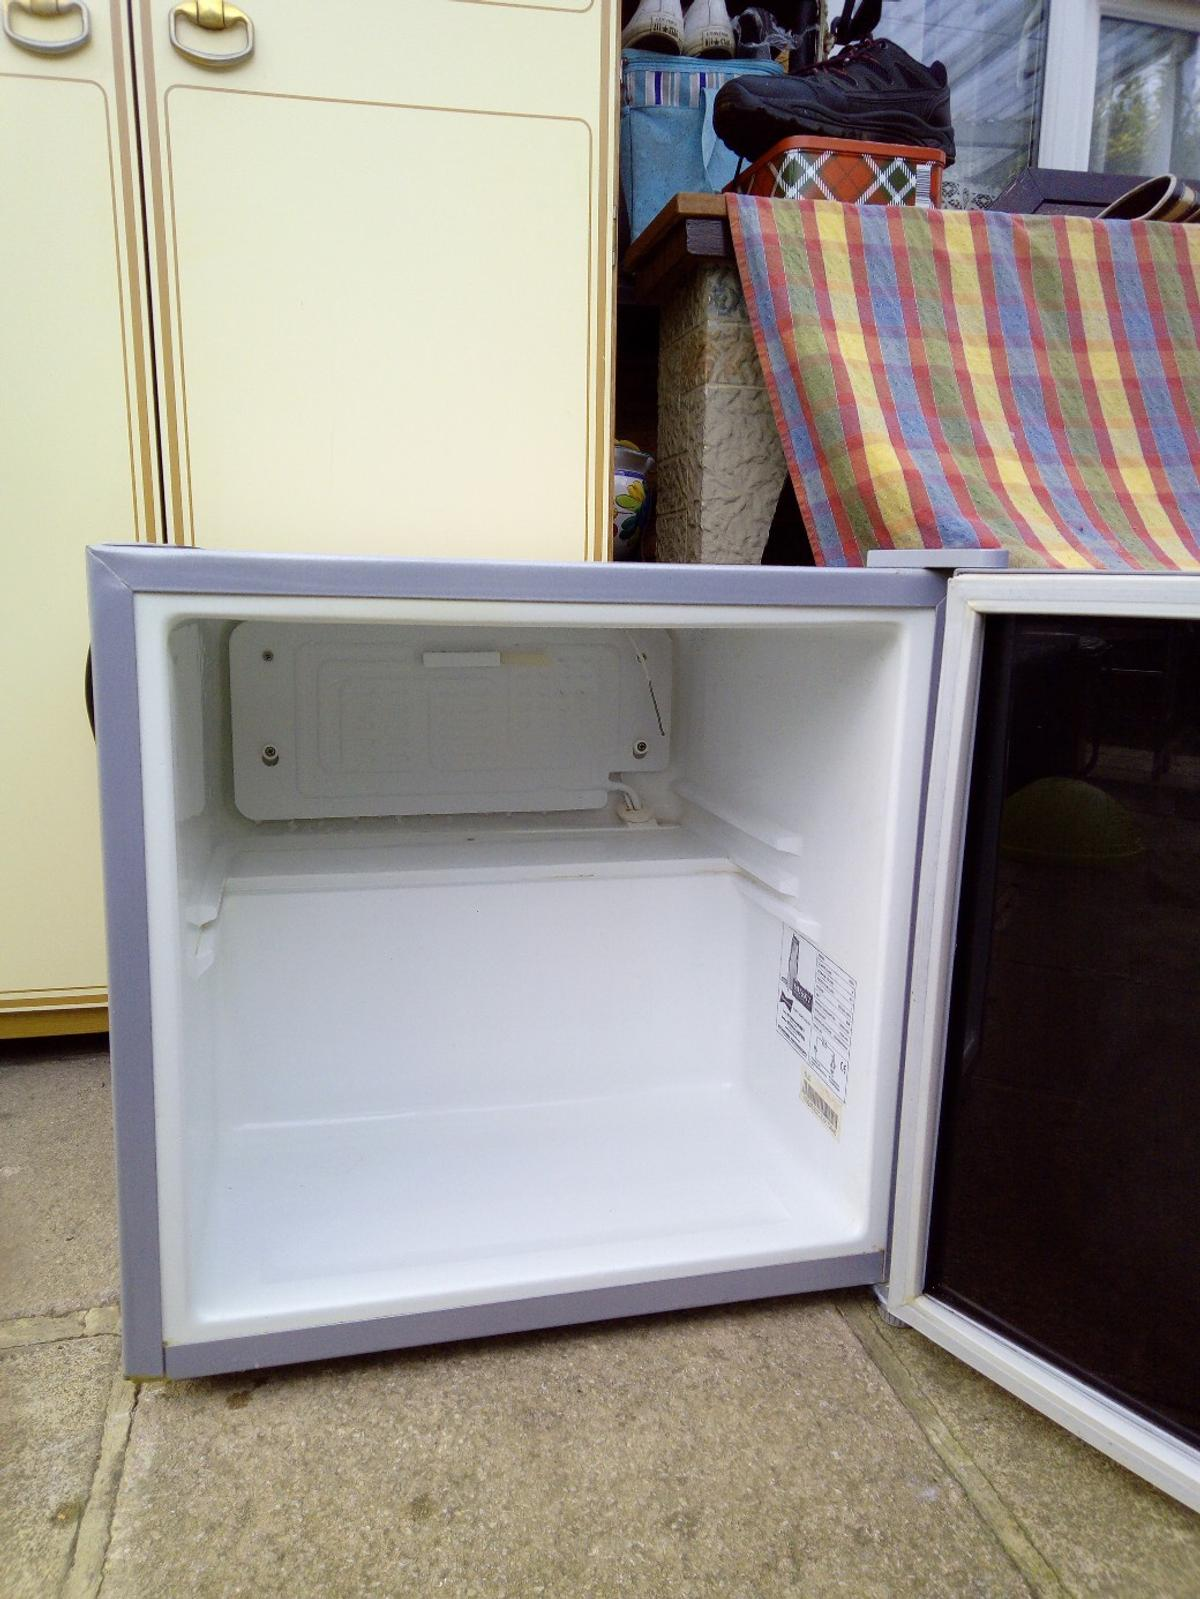 nice little fridge , perfect for when your having a BQ, or Caravan,collection only Nn46ux